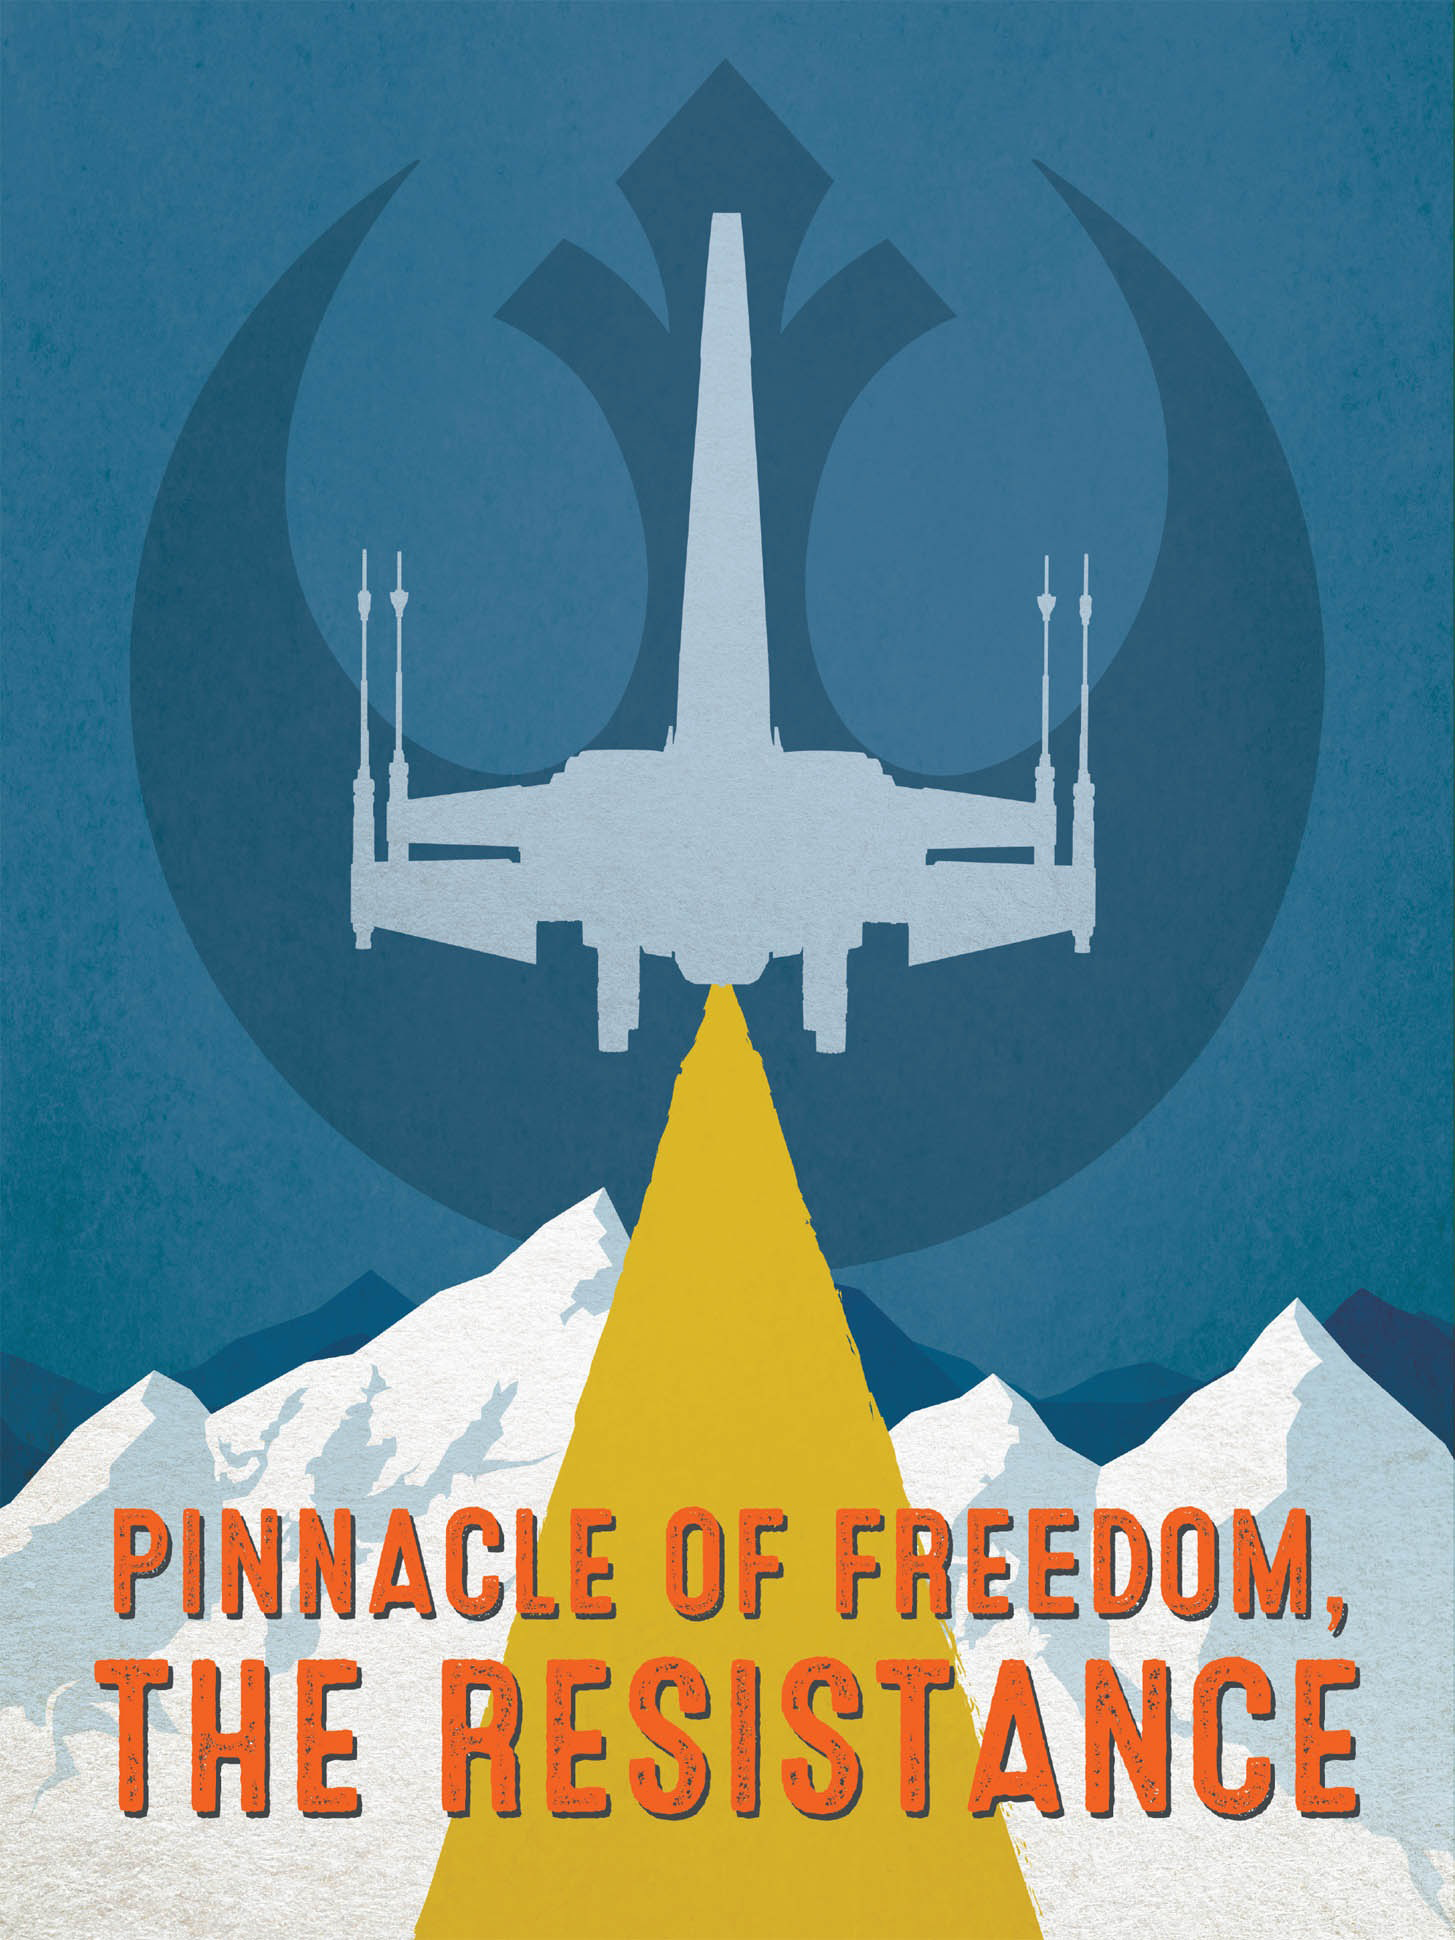 Pinnacle of Freedom, The Resistance